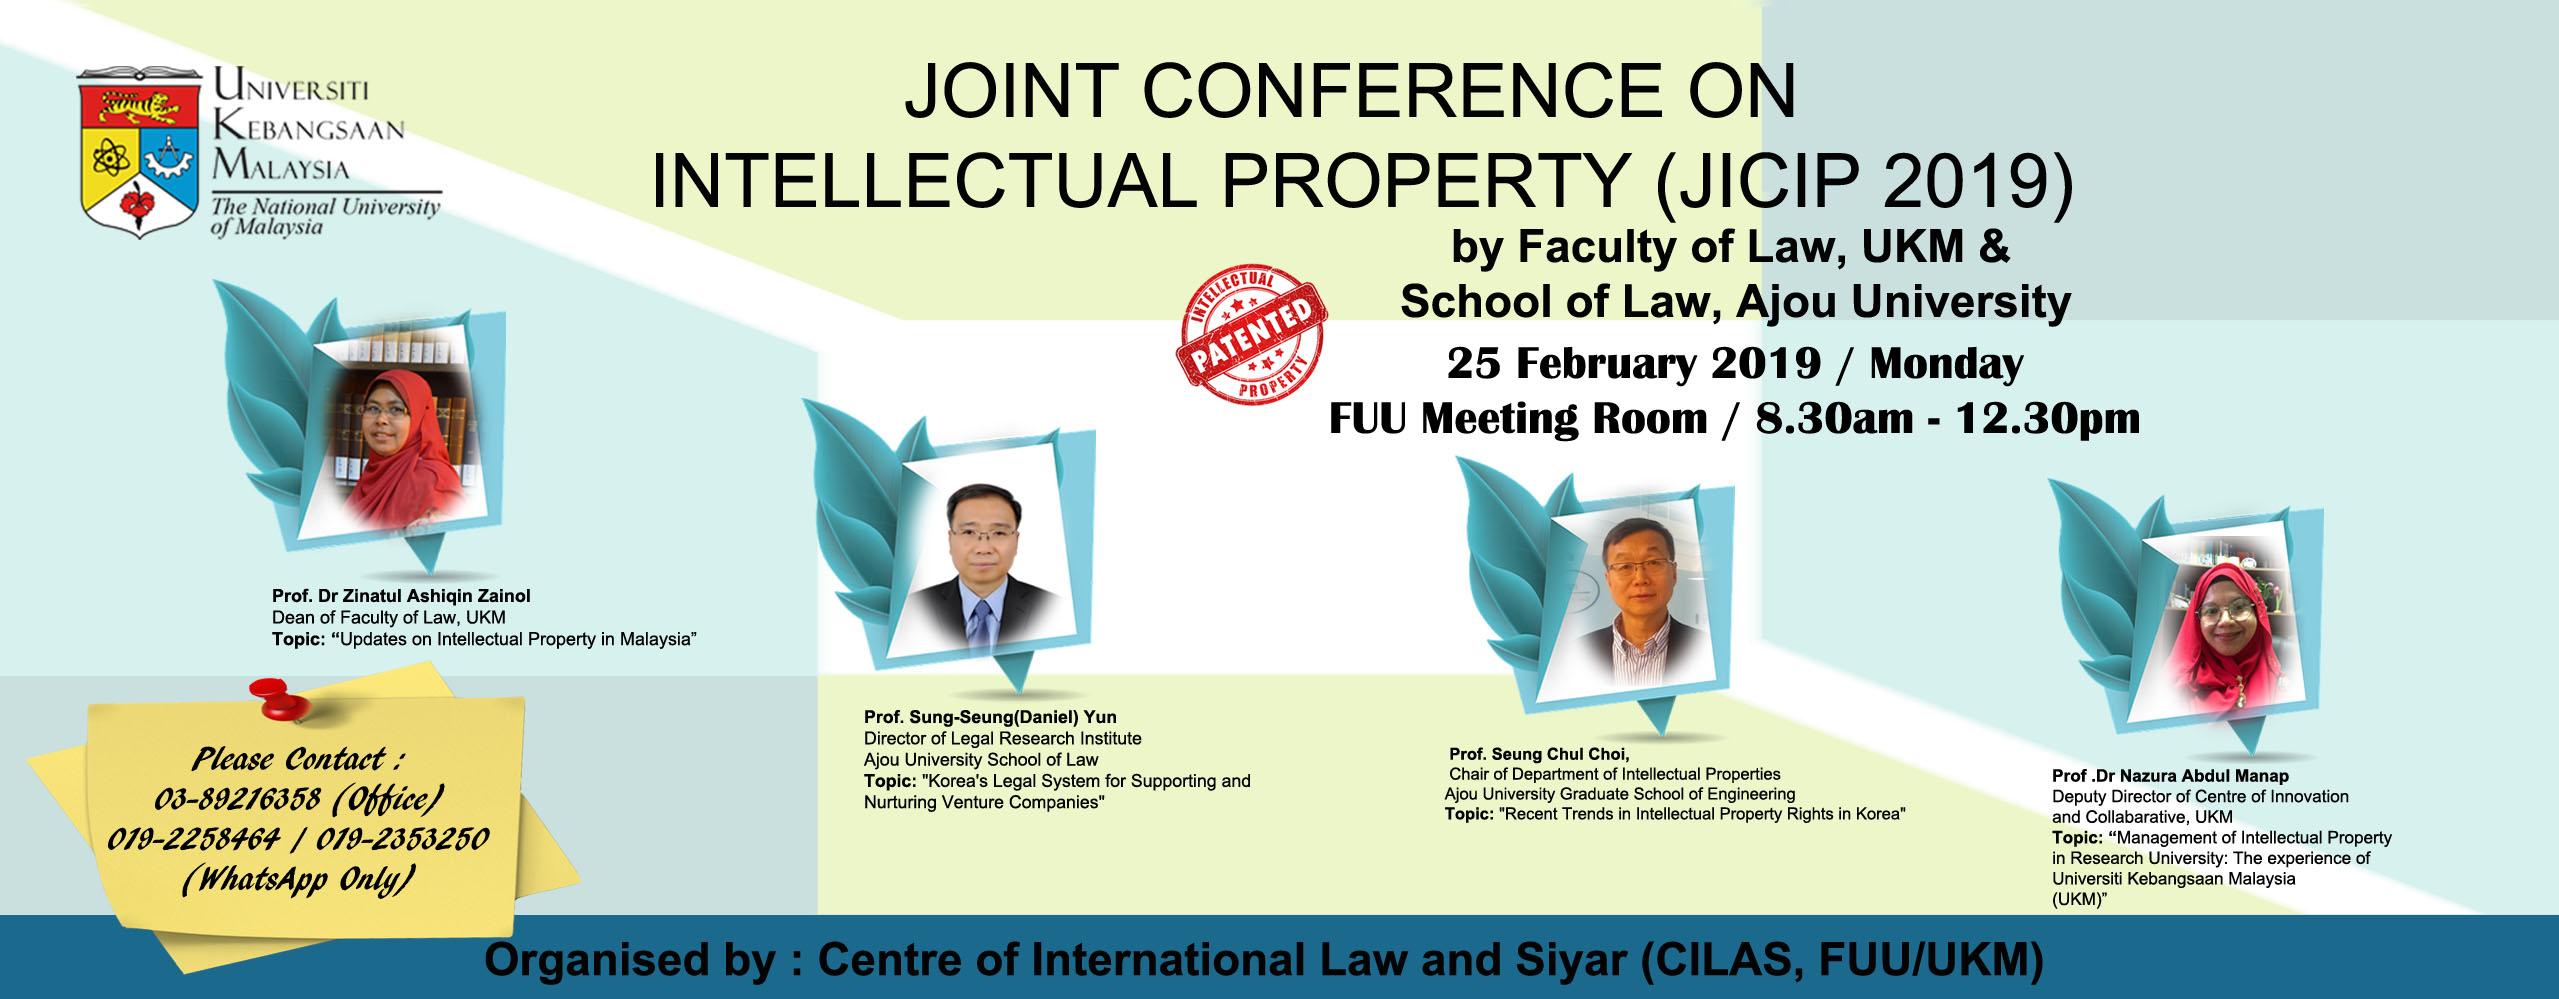 Joint International Conference on Intellectual Property JISIP2019